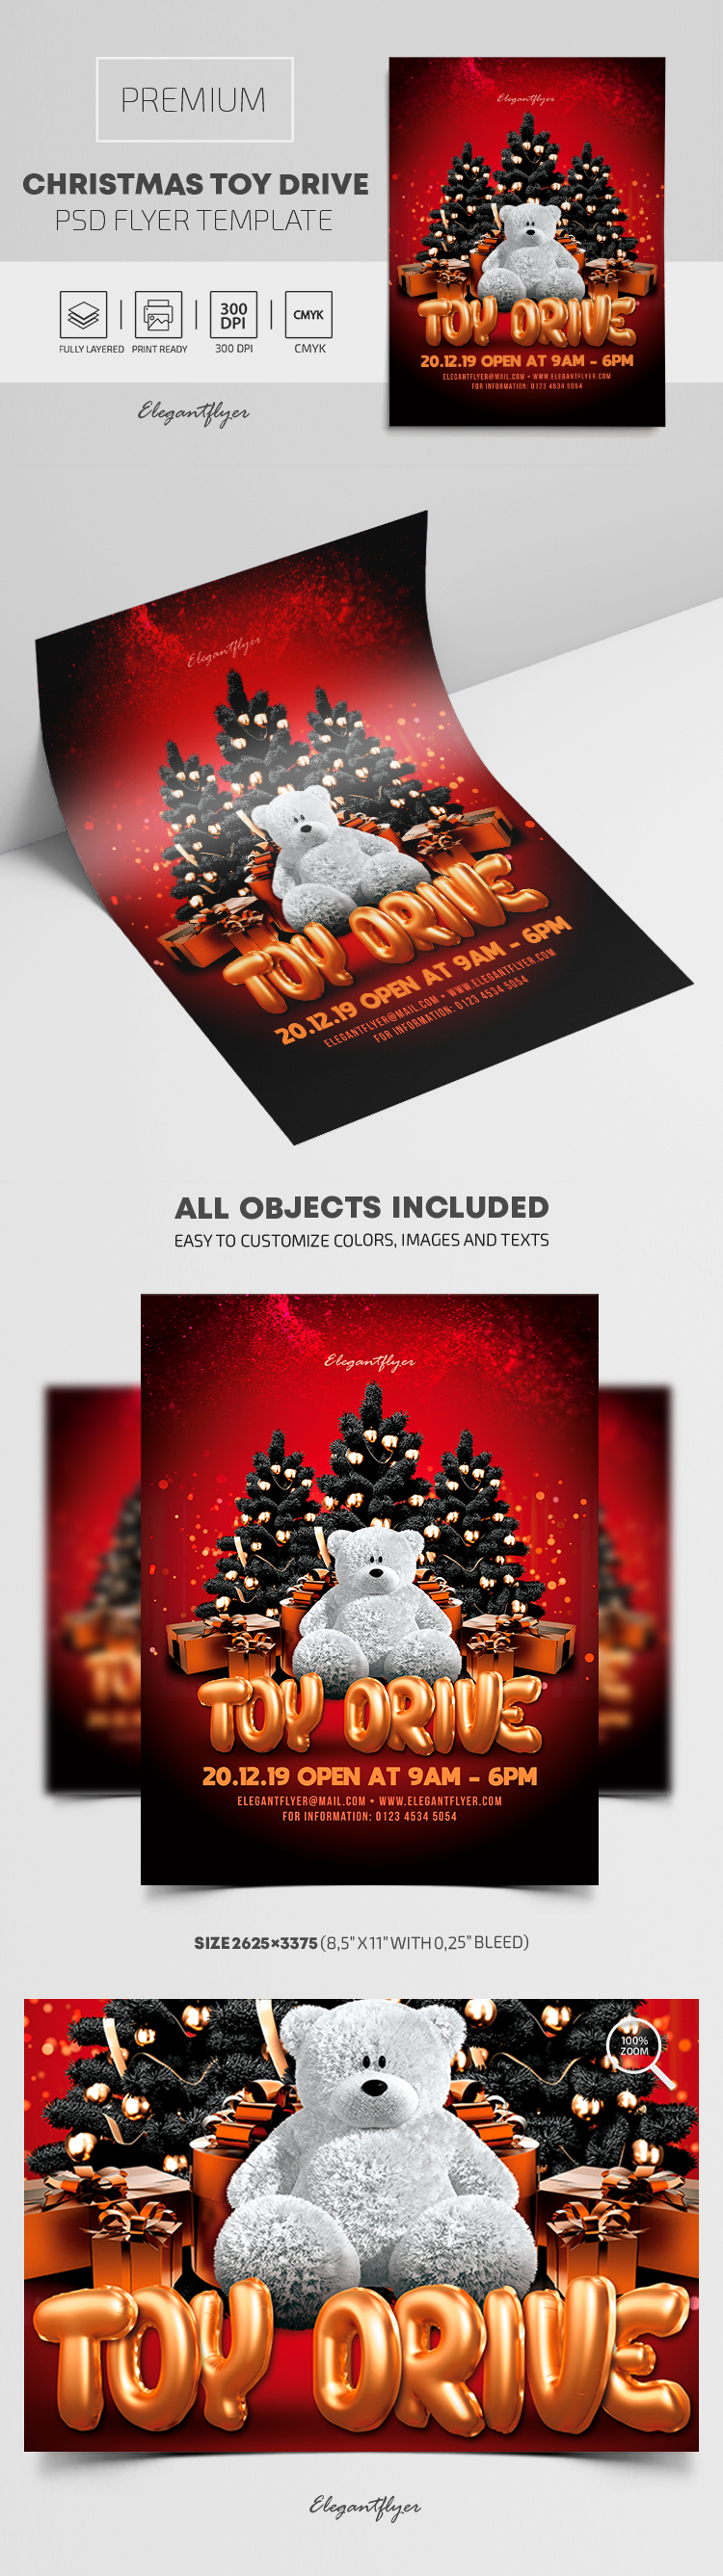 Christmas Toy Drive – Premium PSD Flyer Template